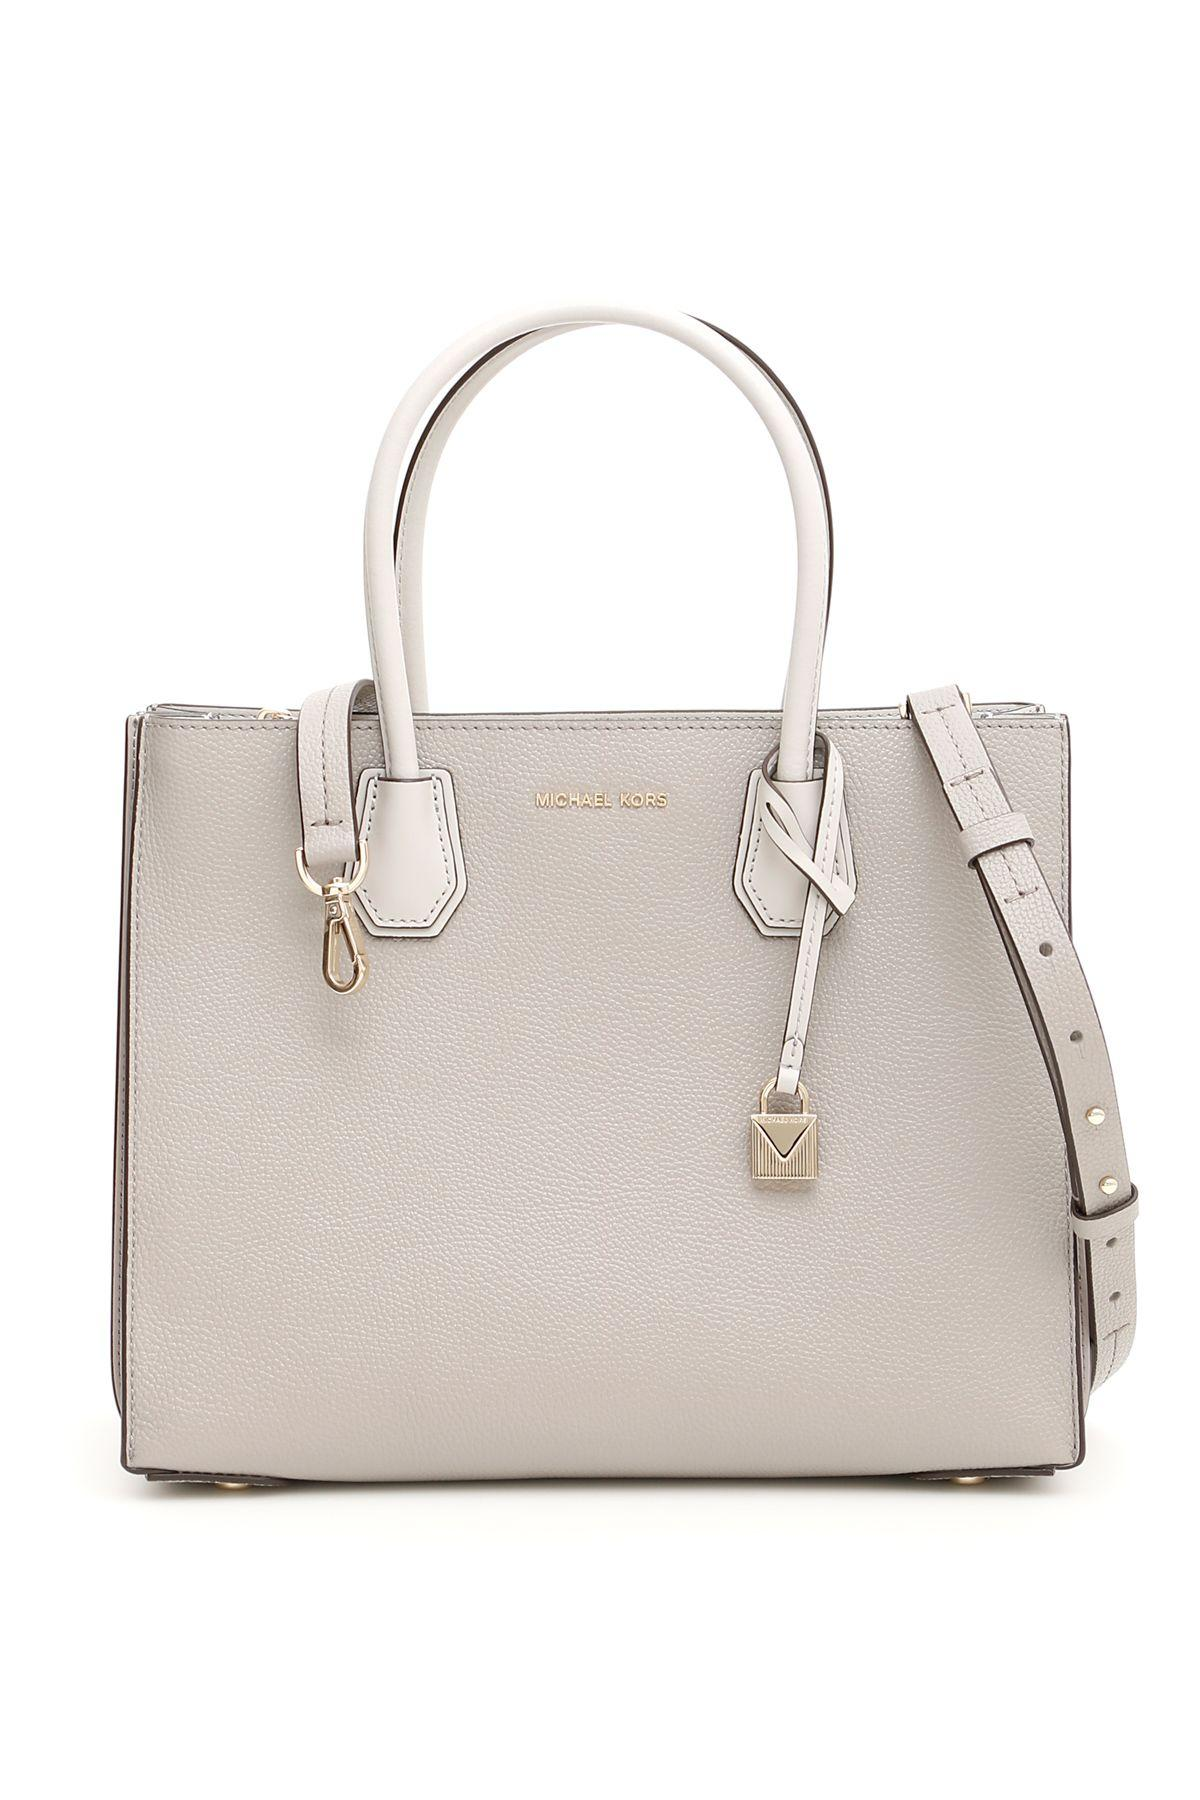 dee64ca8eead Michael Michael Kors Michael Kors Pearl Grey Mercer Accordion Leather Tote  Bag